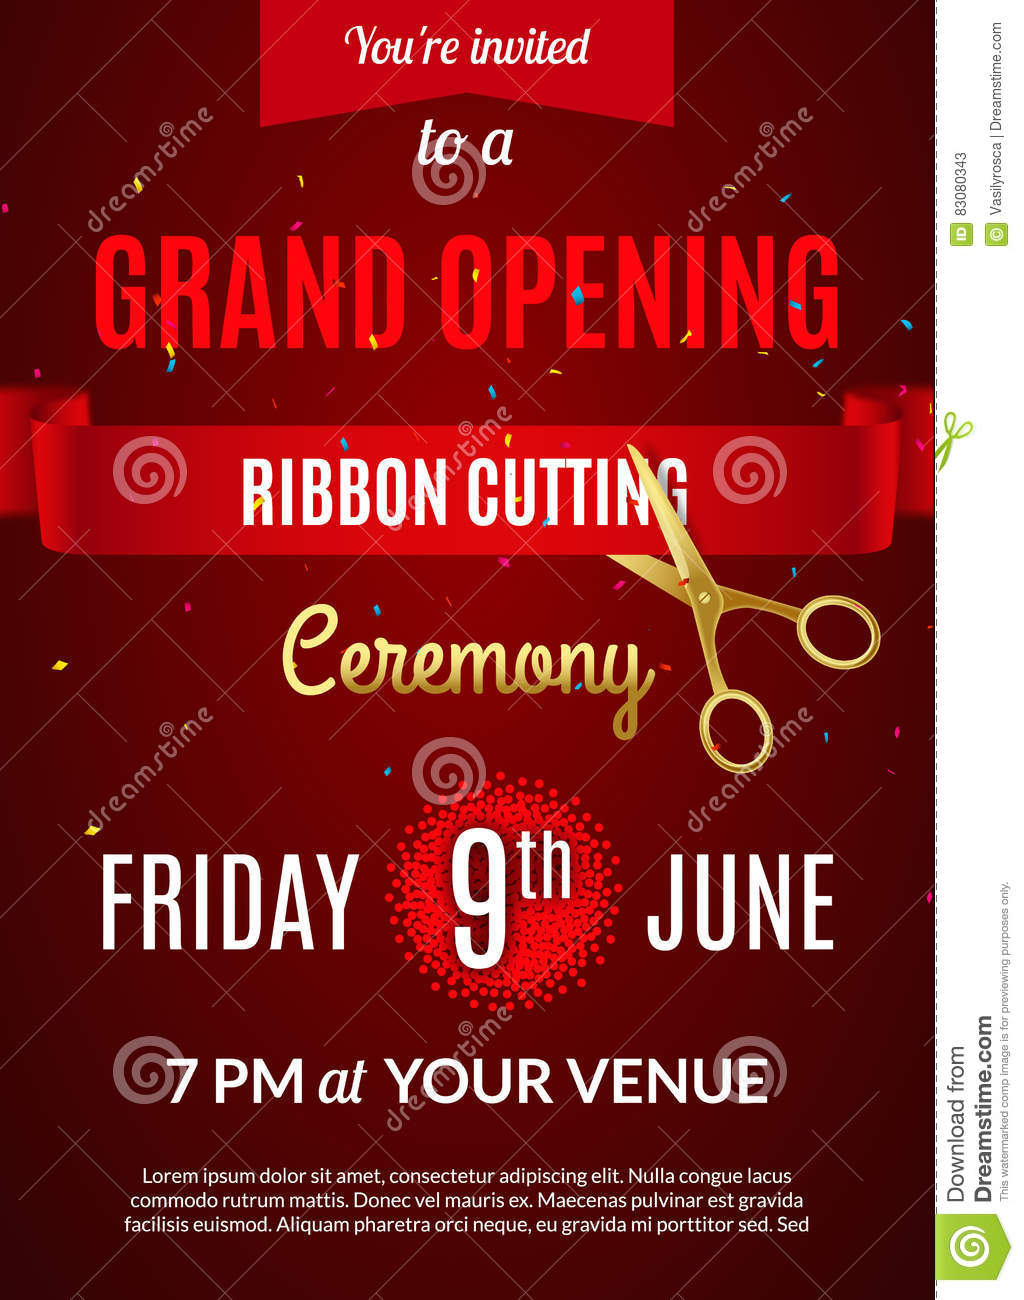 Grand Opening Invitation Card Grand Opening Event Invitation – Grand Opening Invitation Cards